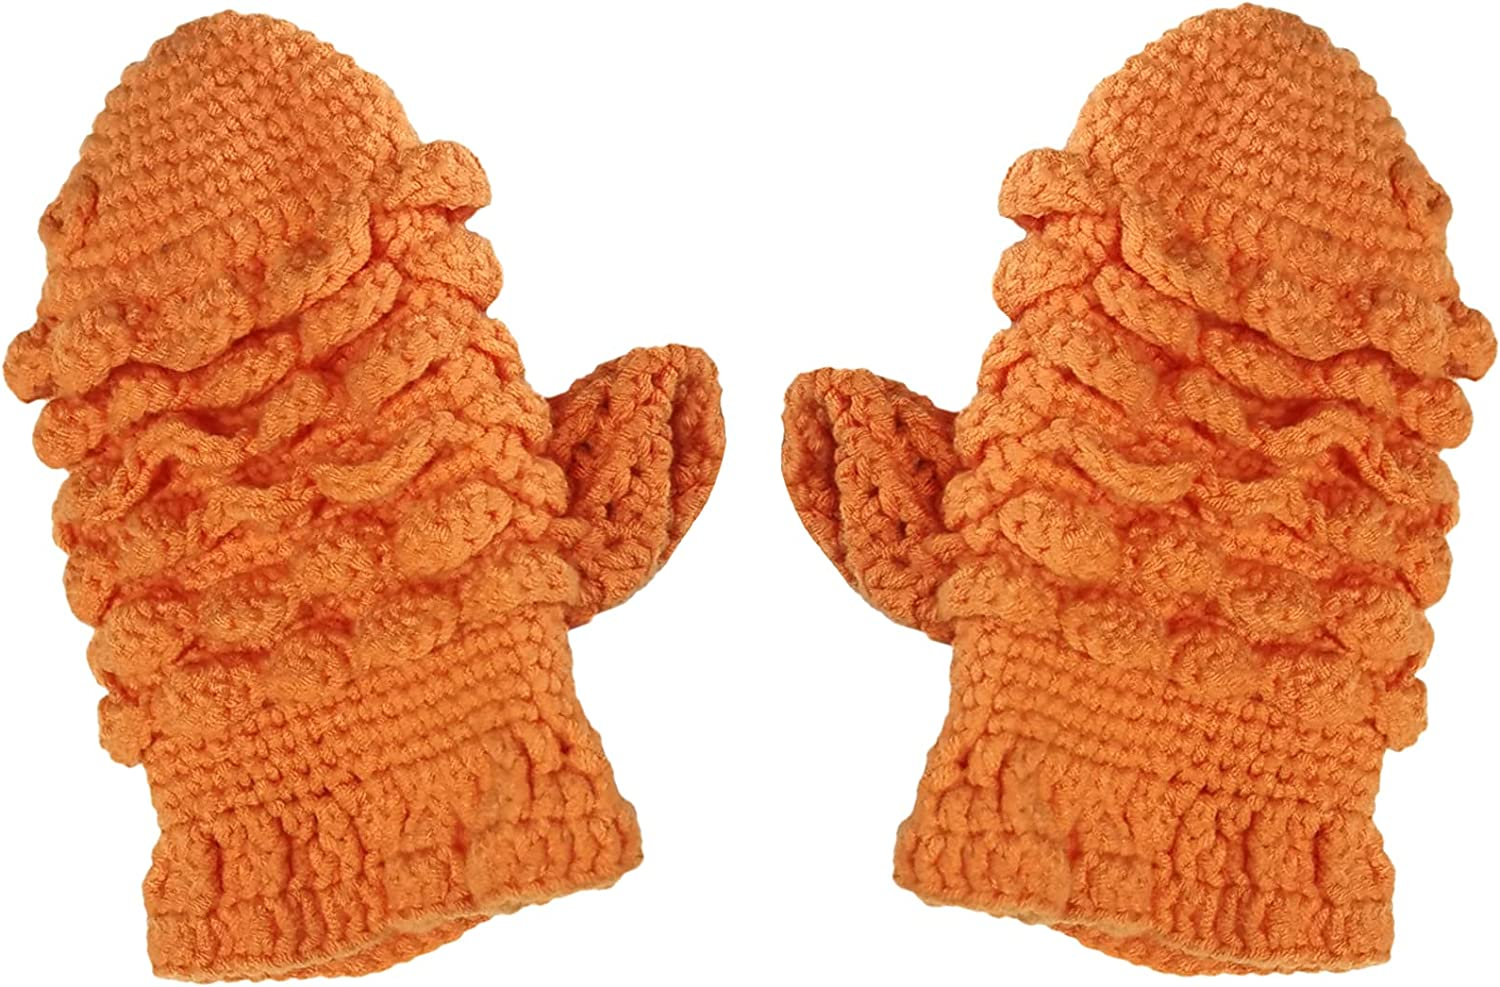 BIBITIME Handmade Knitted Fish Gloves Unisex Adult Winter Cold Weather Warm